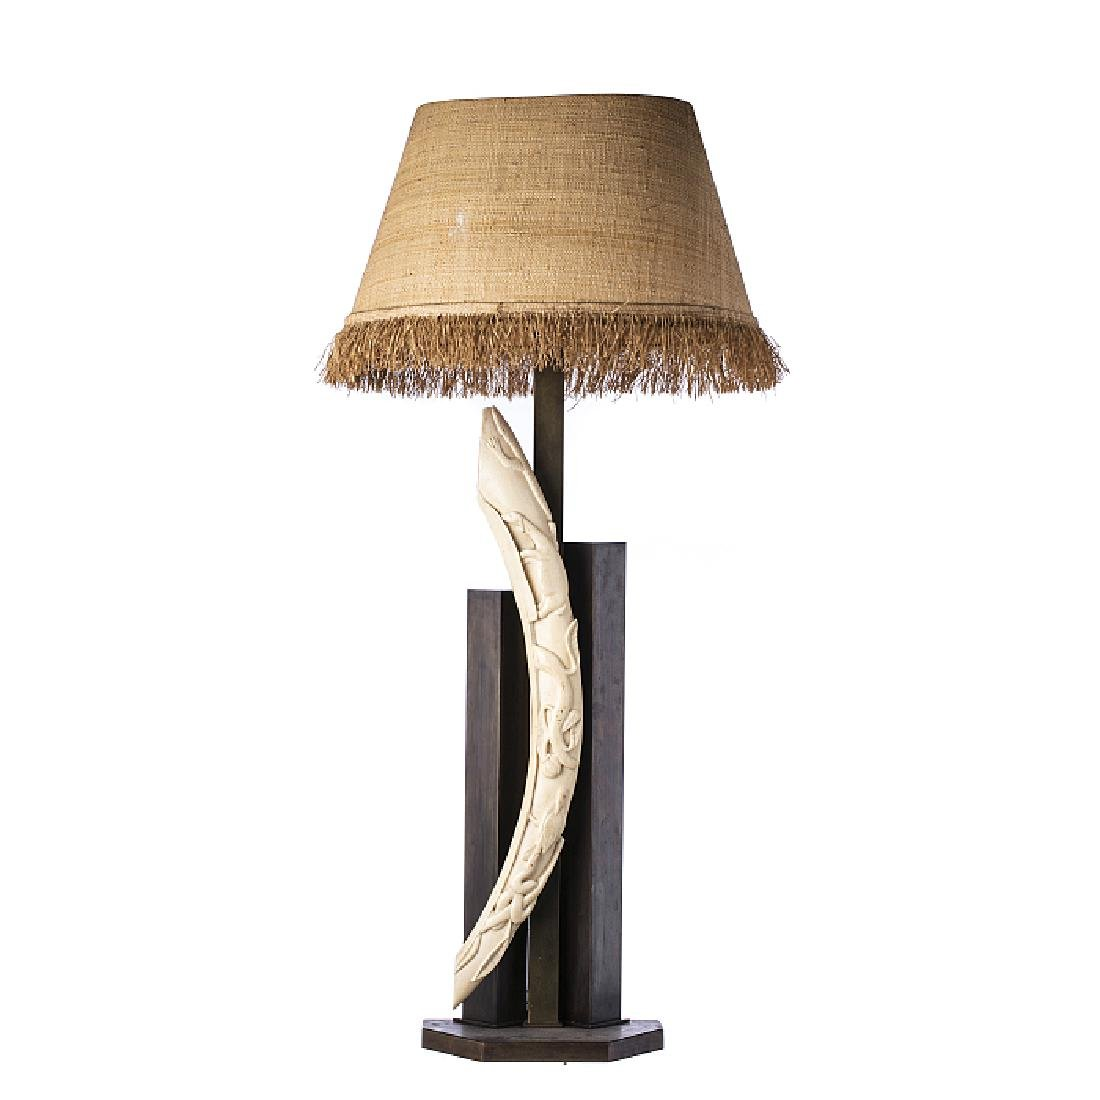 Modernist lamp with a carved tusk in ivory